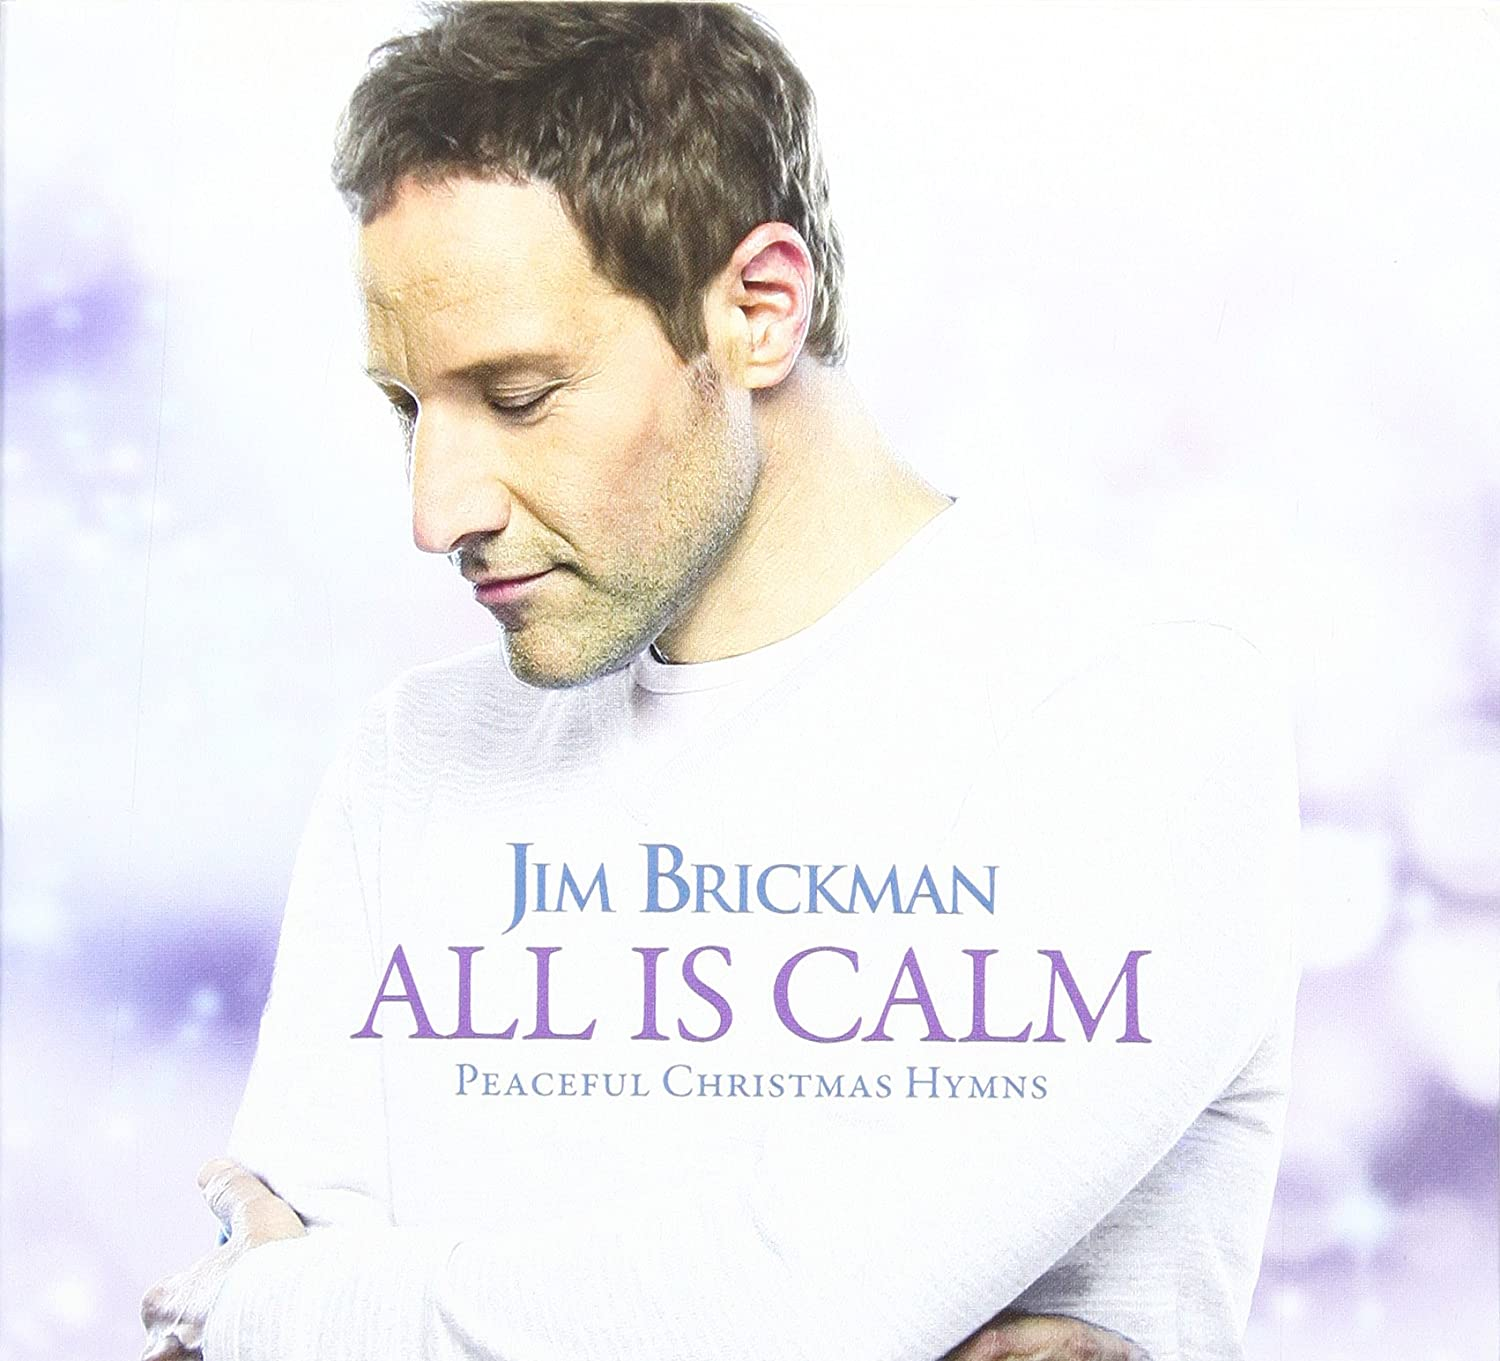 Jim Brickman - All Is Calm Peaceful Christmas Hymns LIMITED EDITION ...